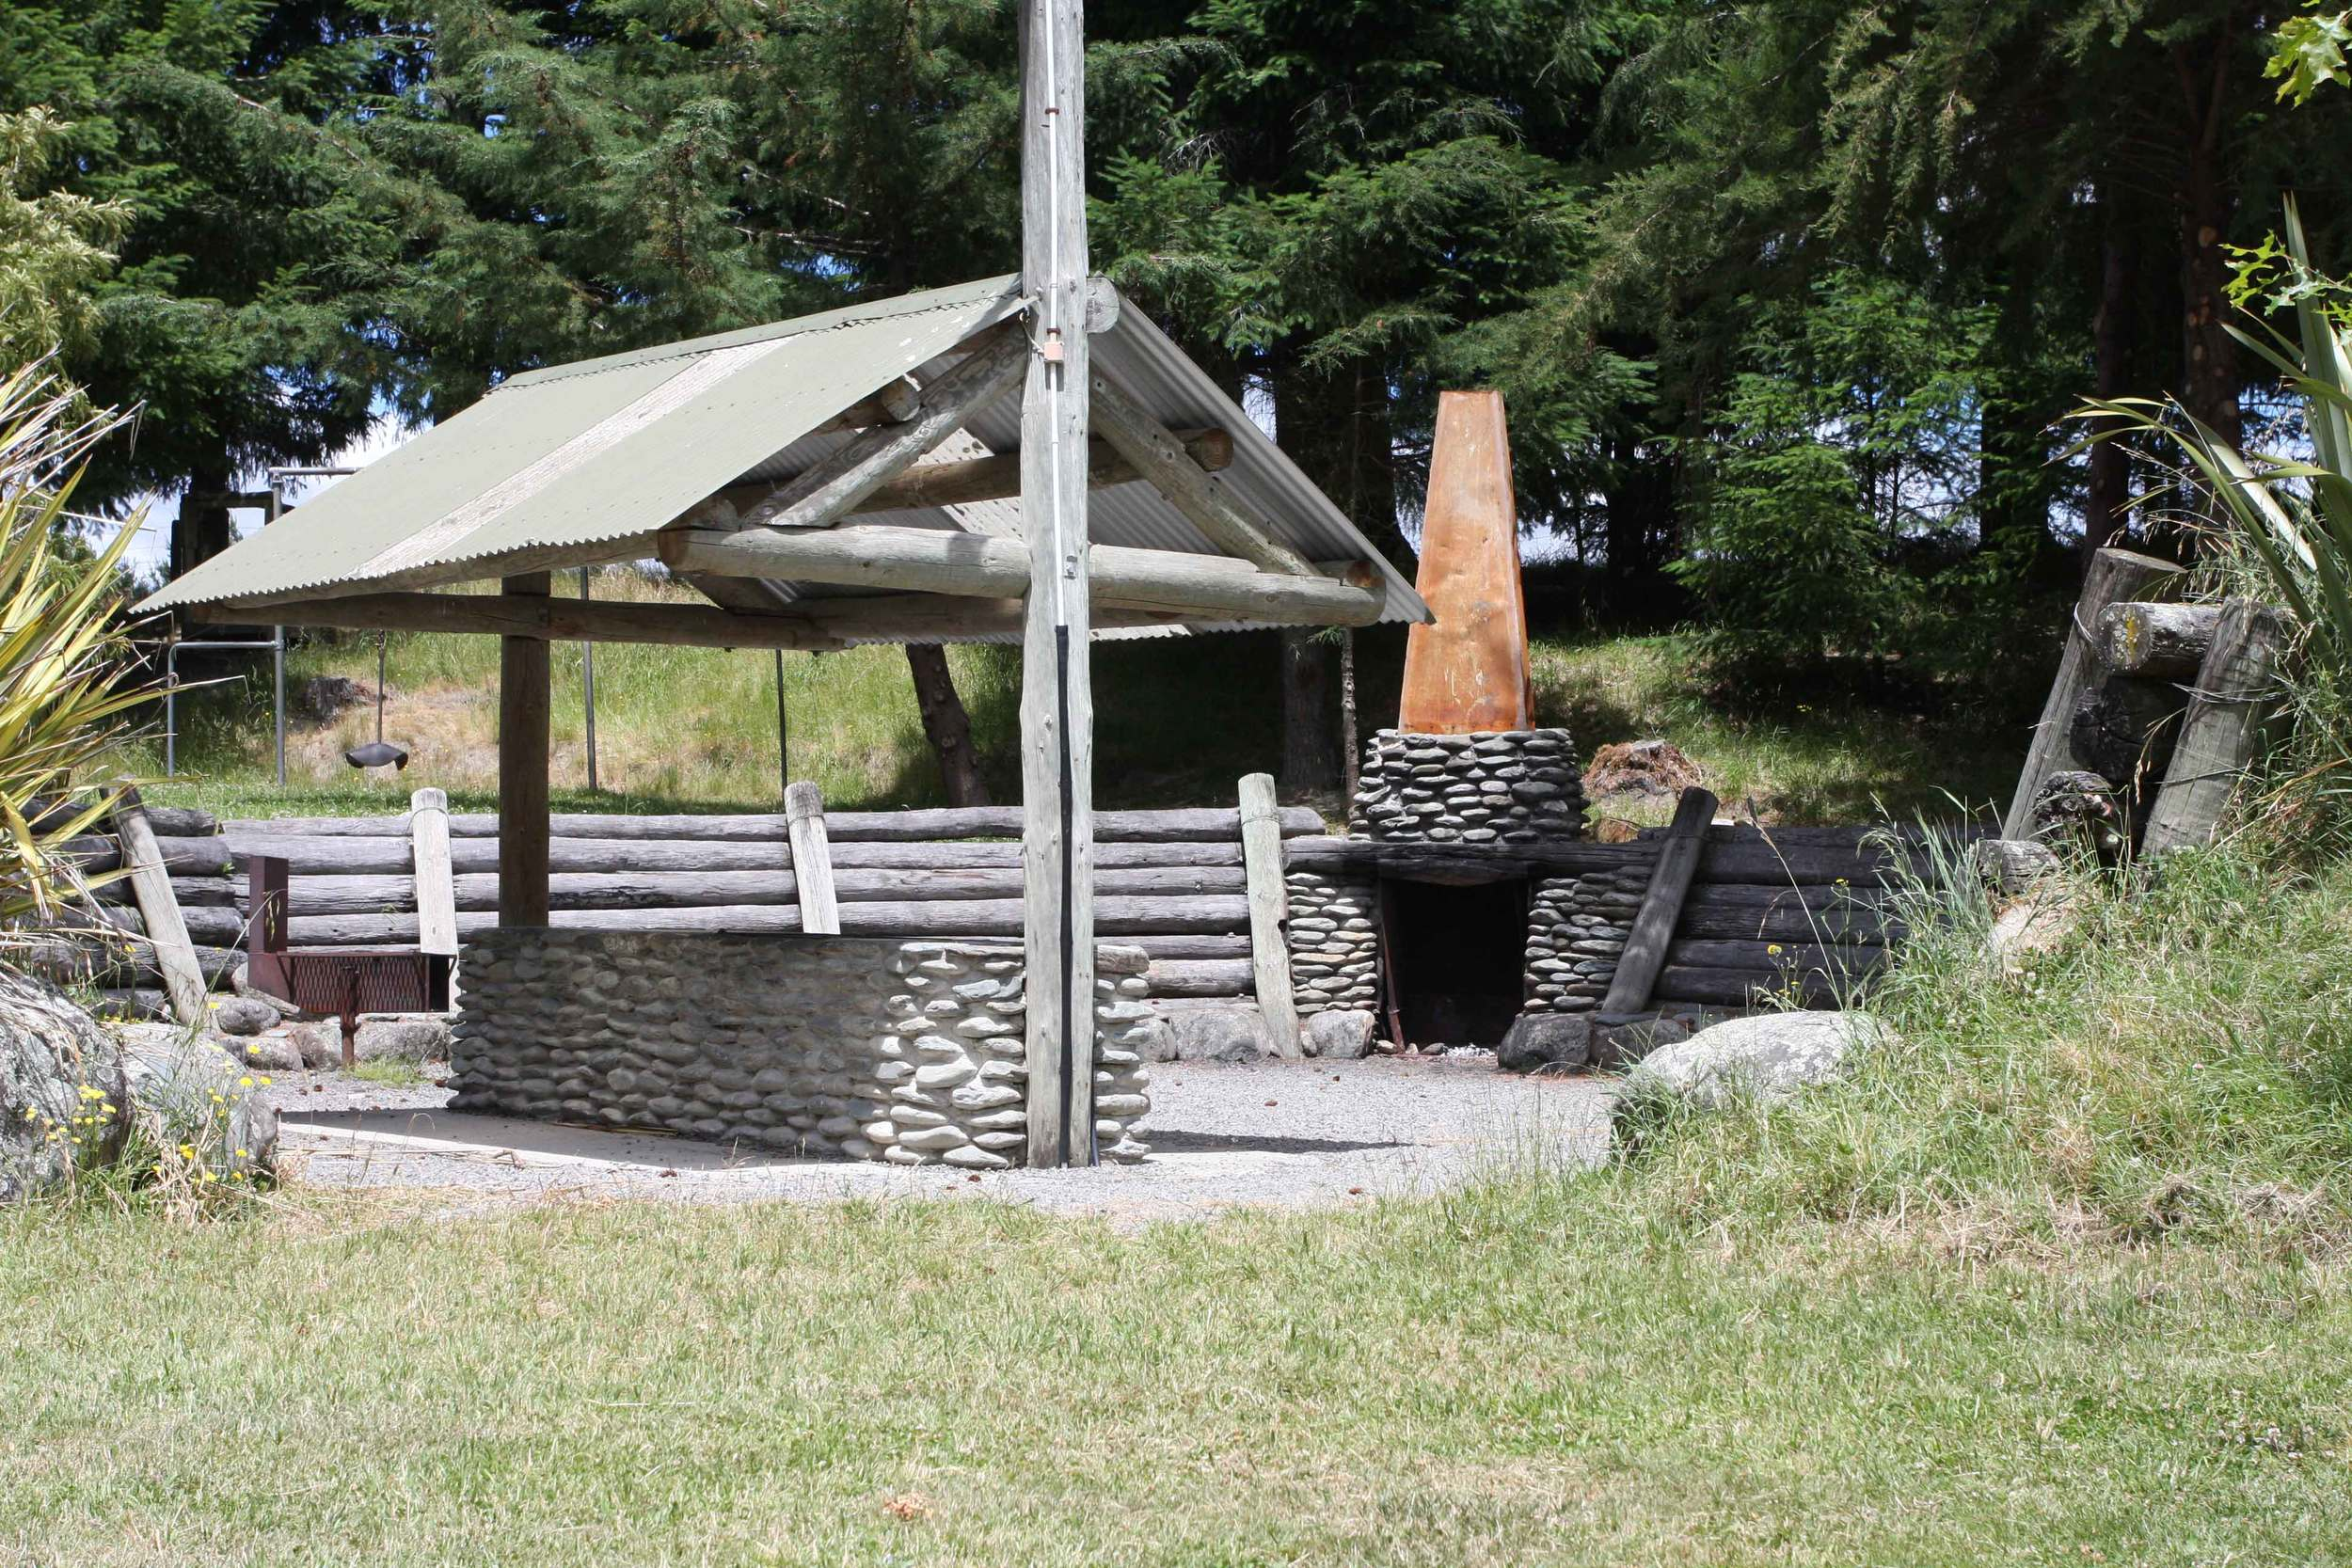 BBQ and Camp fire area